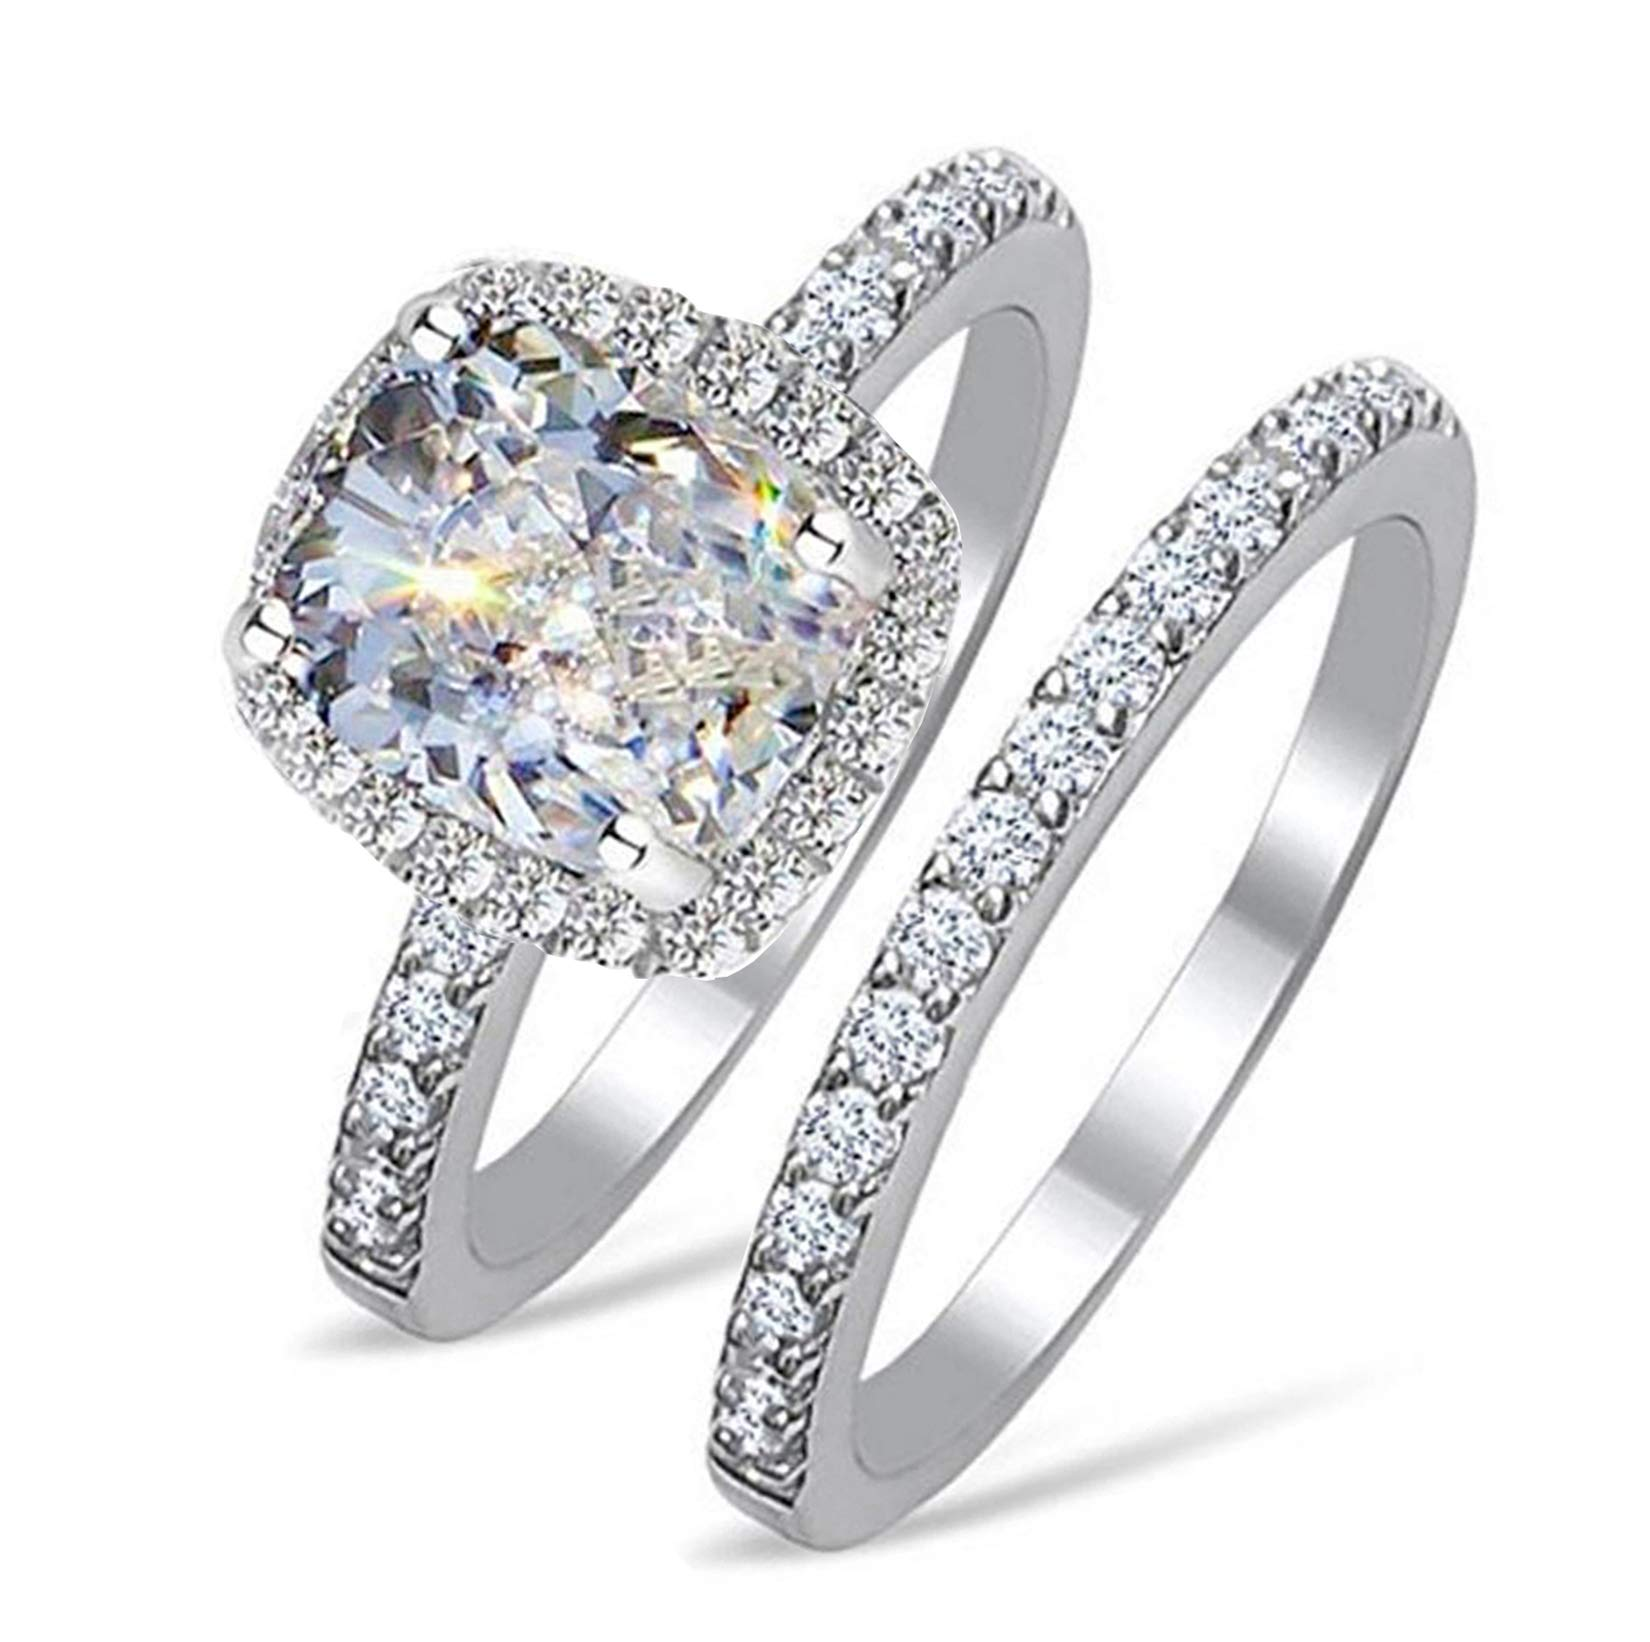 RS45 TOP GRADE 2 CARAT RADIANT EMERALD CUSHION CUT SONA NSCD SIMULATED DIAMOND RING BAND SET SOLID 925 SILVER